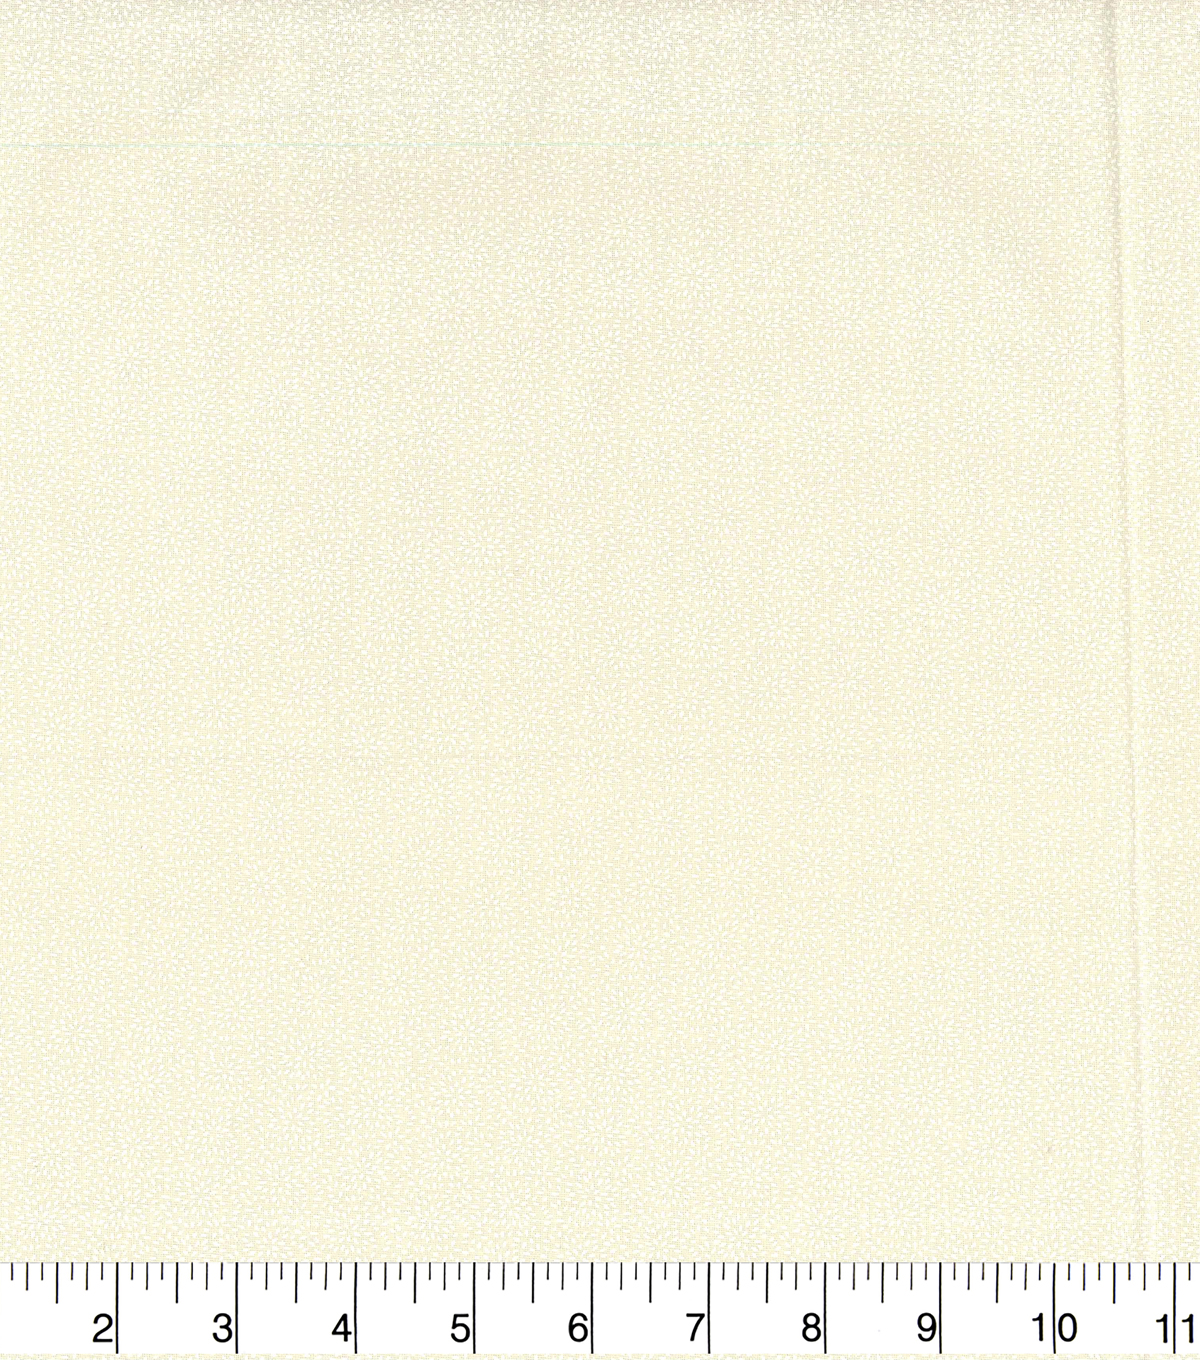 Keepsake Calico Cotton Fabric -Tiny Mum on Neutral